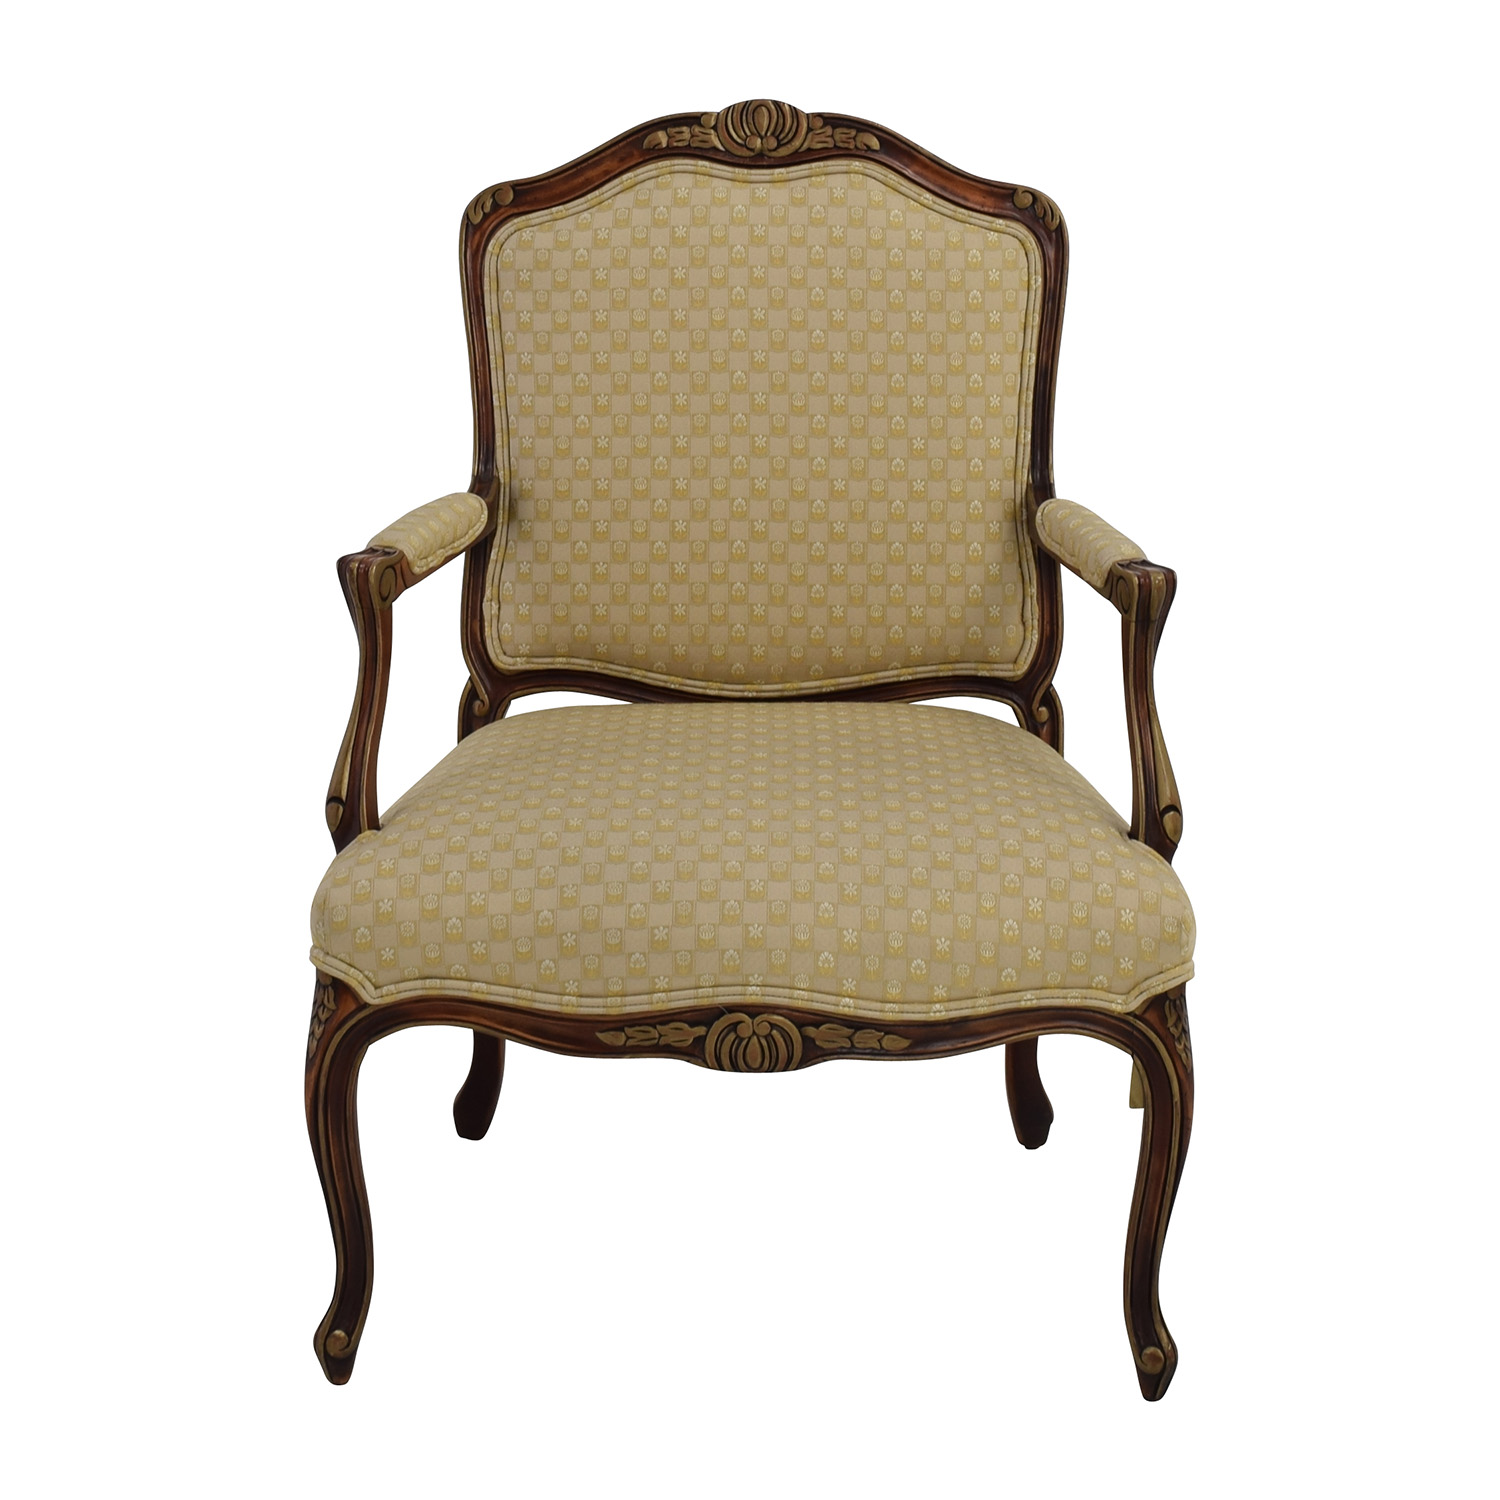 85 Off Antique Upholstered Beige Classic Armchair Chairs